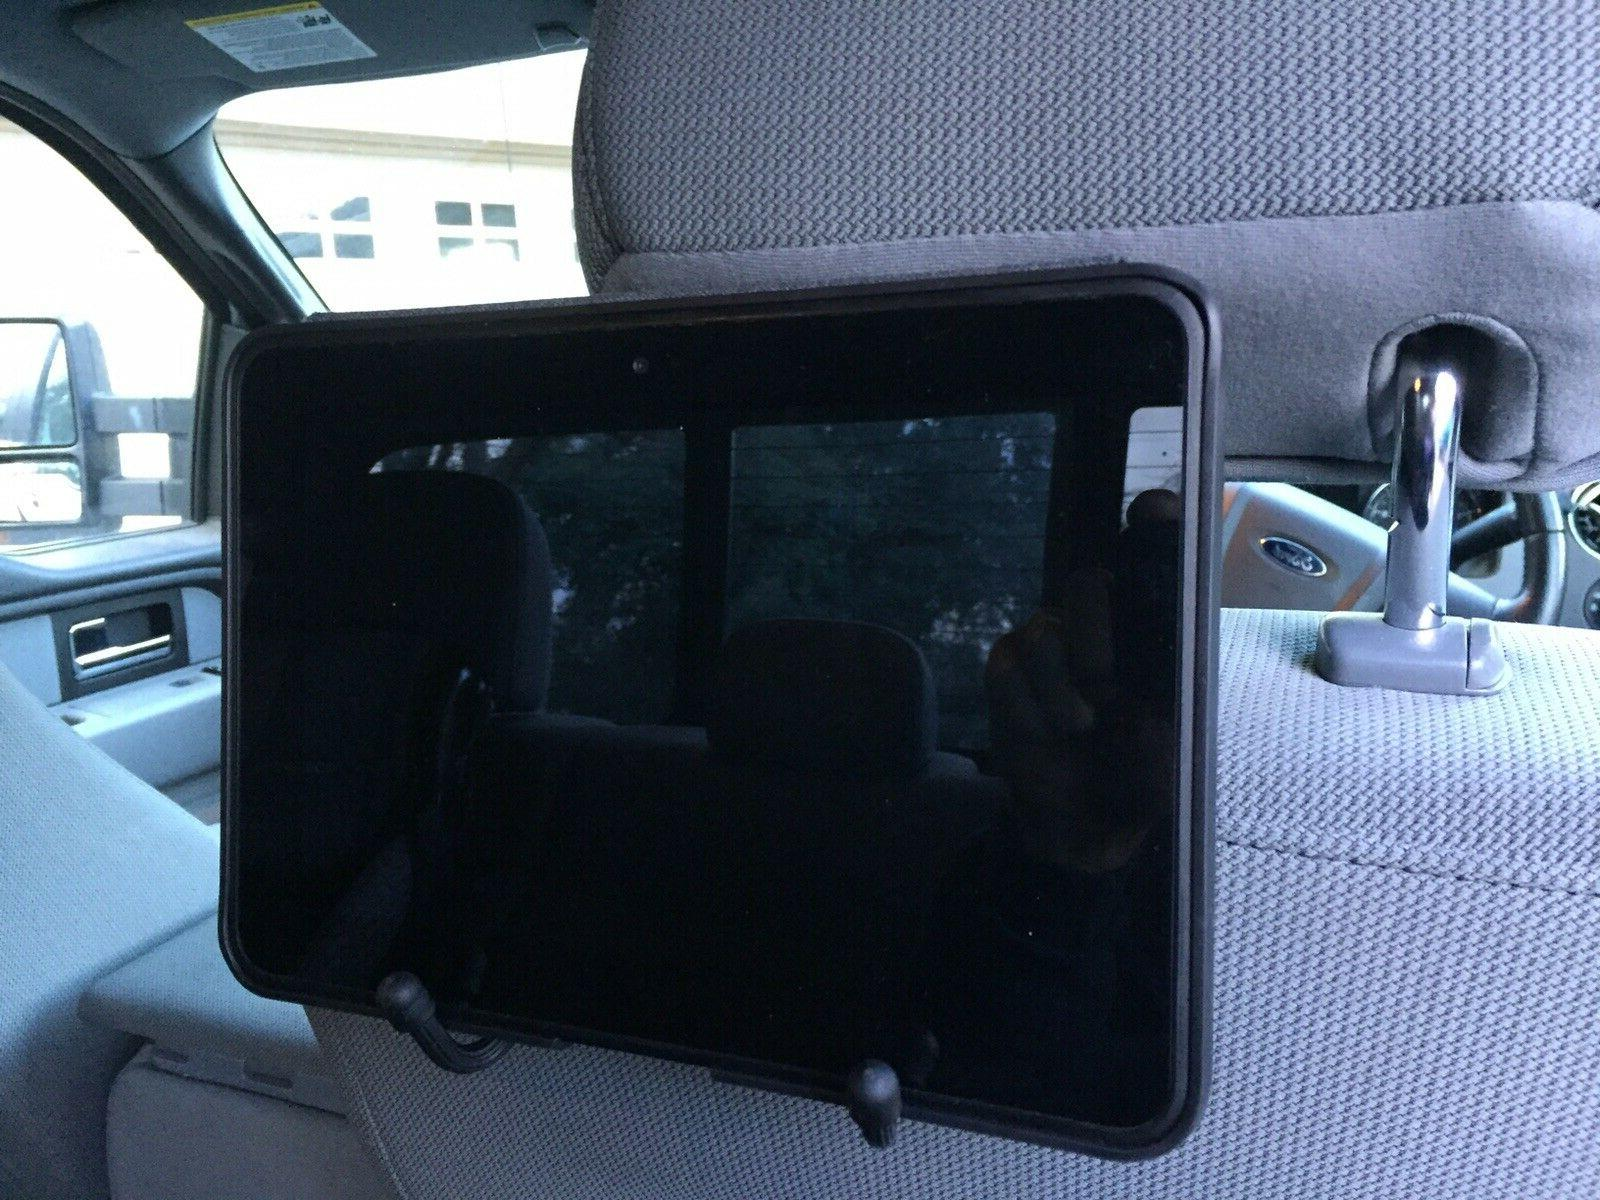 iPhone Tablet/Device Holder Planes Cars Customize